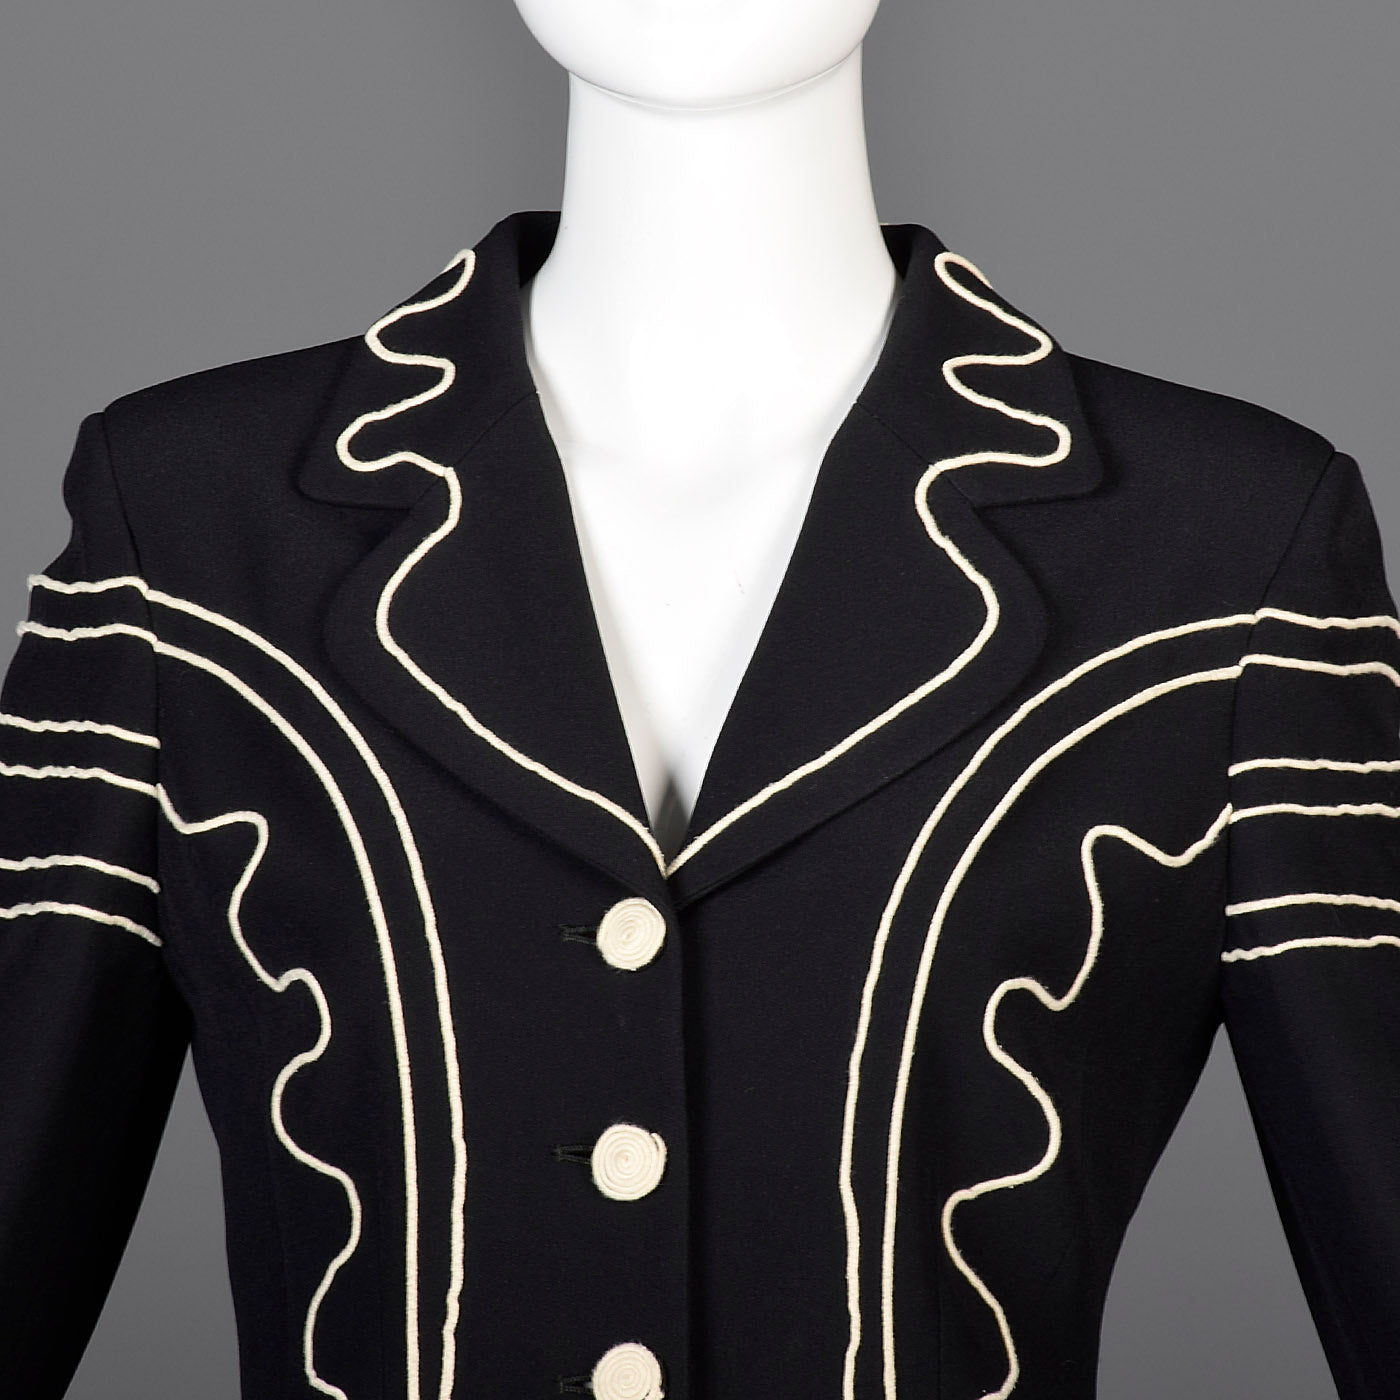 Moschino Cheap & Chic Skirt Suit with Rope Soutache Trim